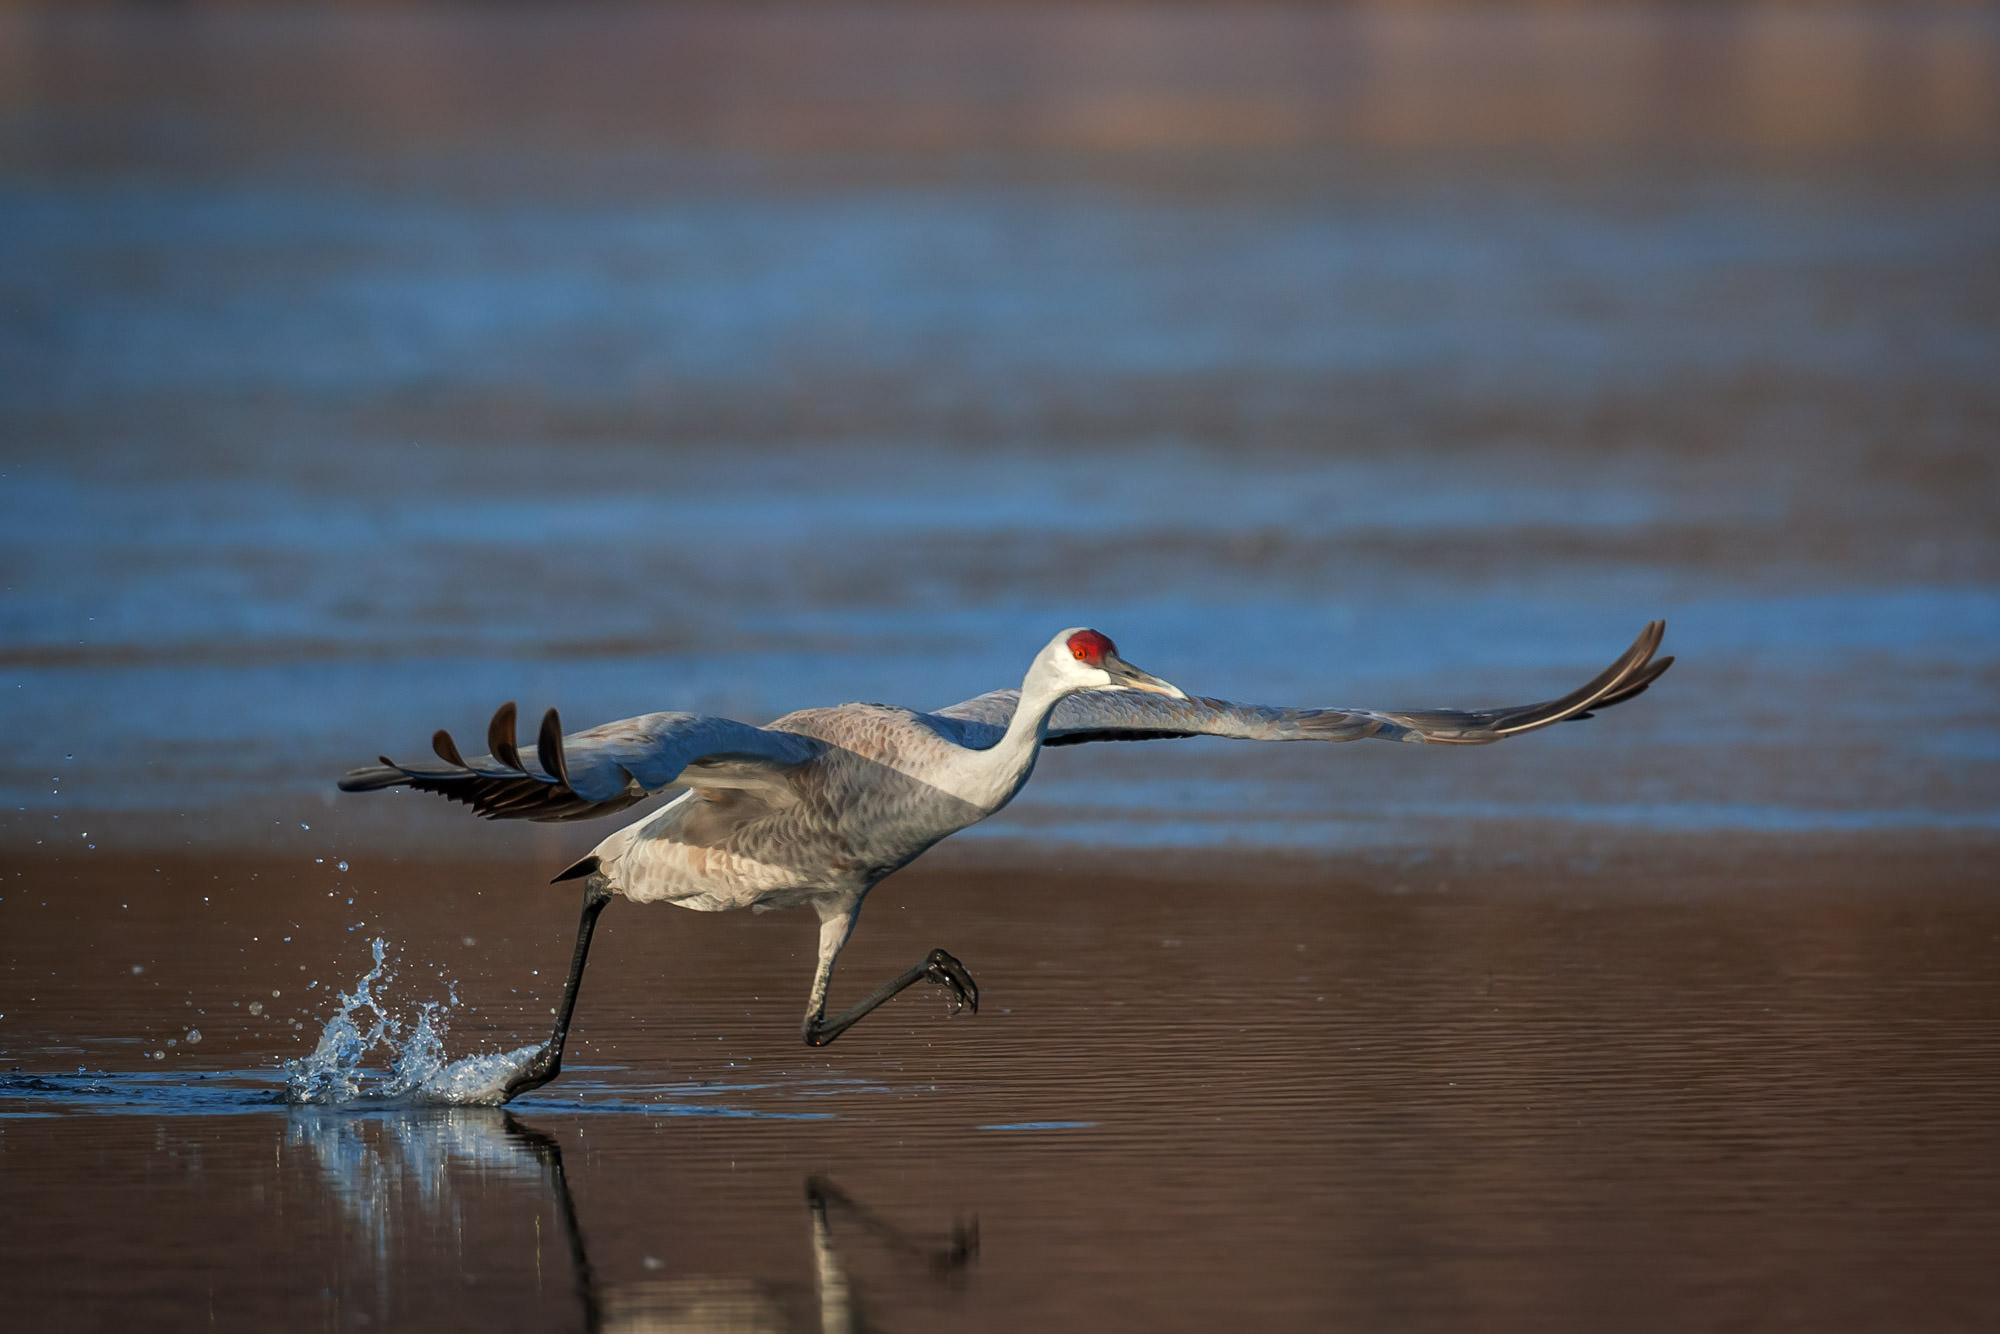 Sandhill Crane Fine Art Photography A Limited Edition photograph of a Sandhill Crane making its last steps before takeoff at...